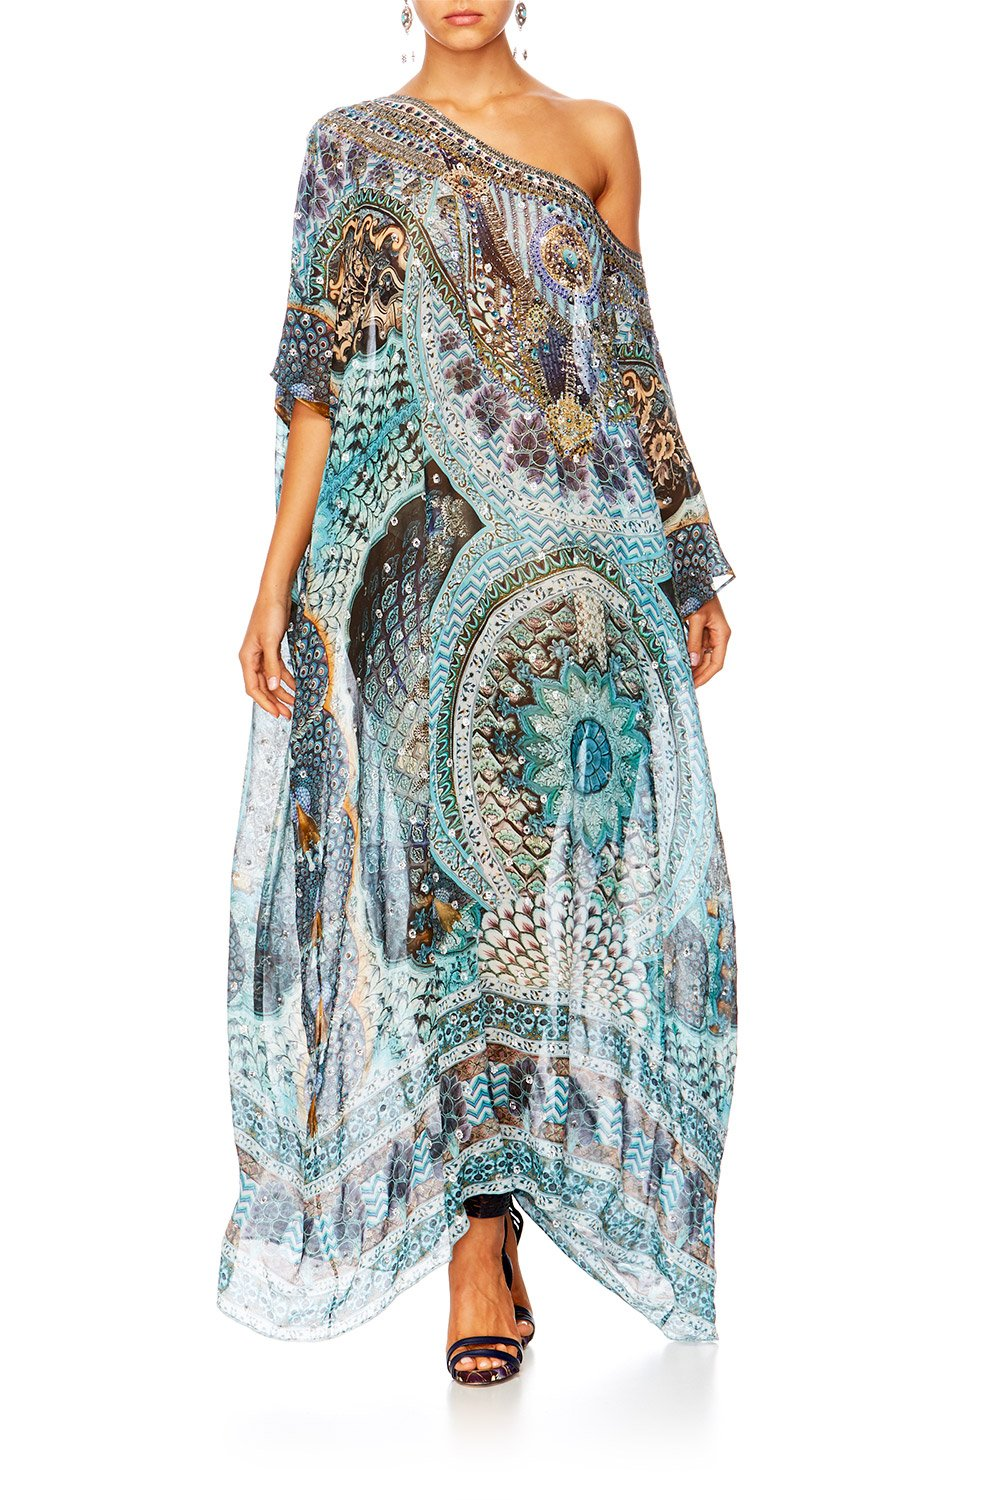 TURN ON THE CHARM ROUND NECK KAFTAN